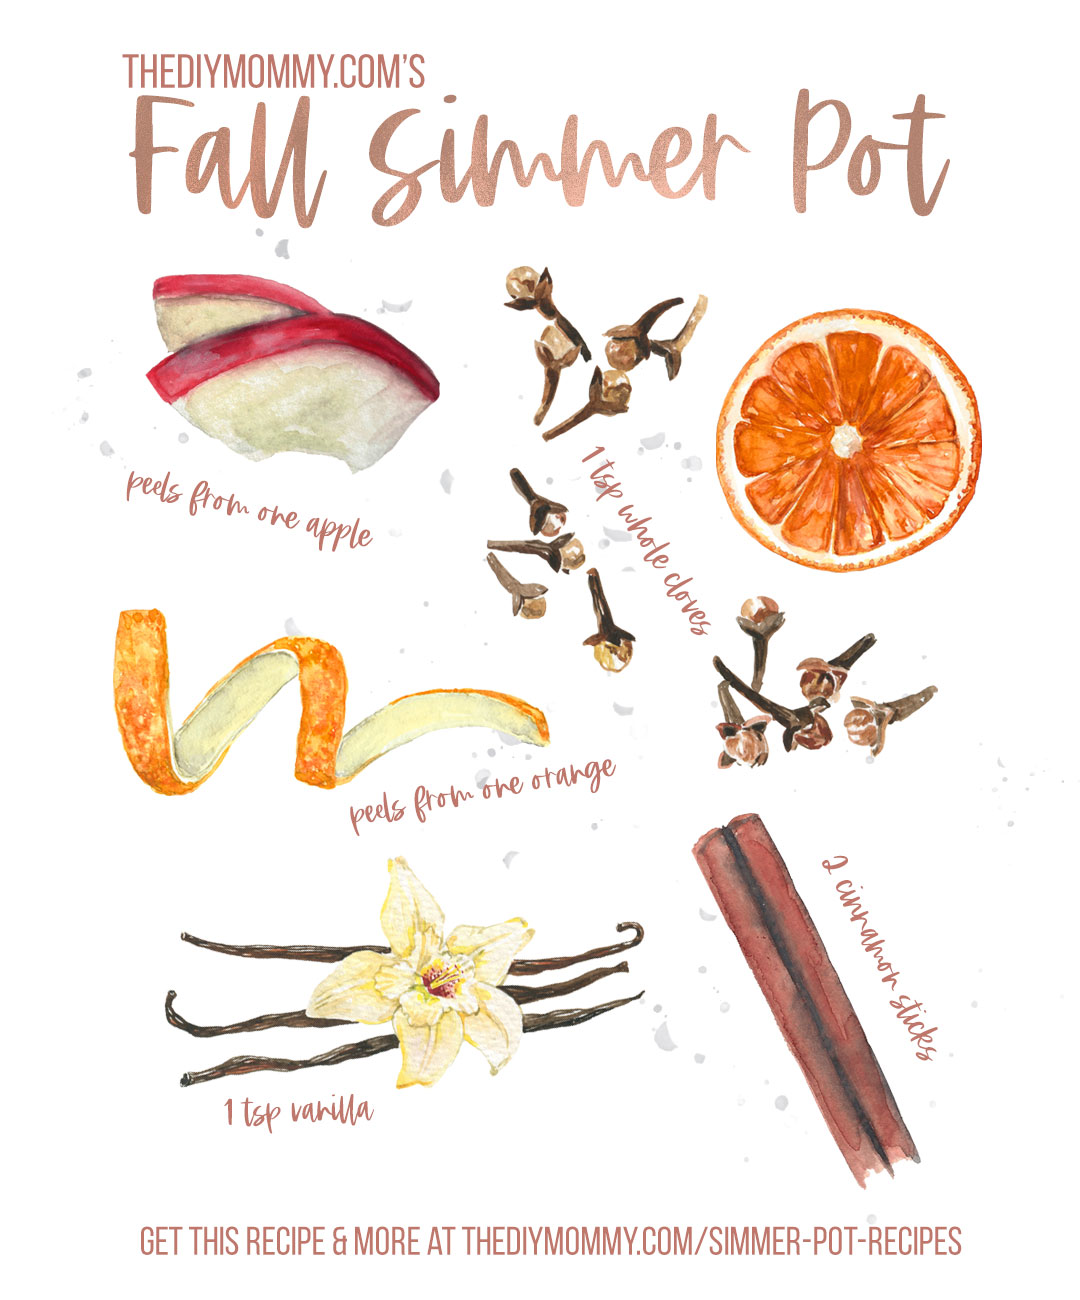 Combine these ingredients in 2 cups of simmering water to create a beautiful Fall scent in your home. Full recipe at thediymommy.com